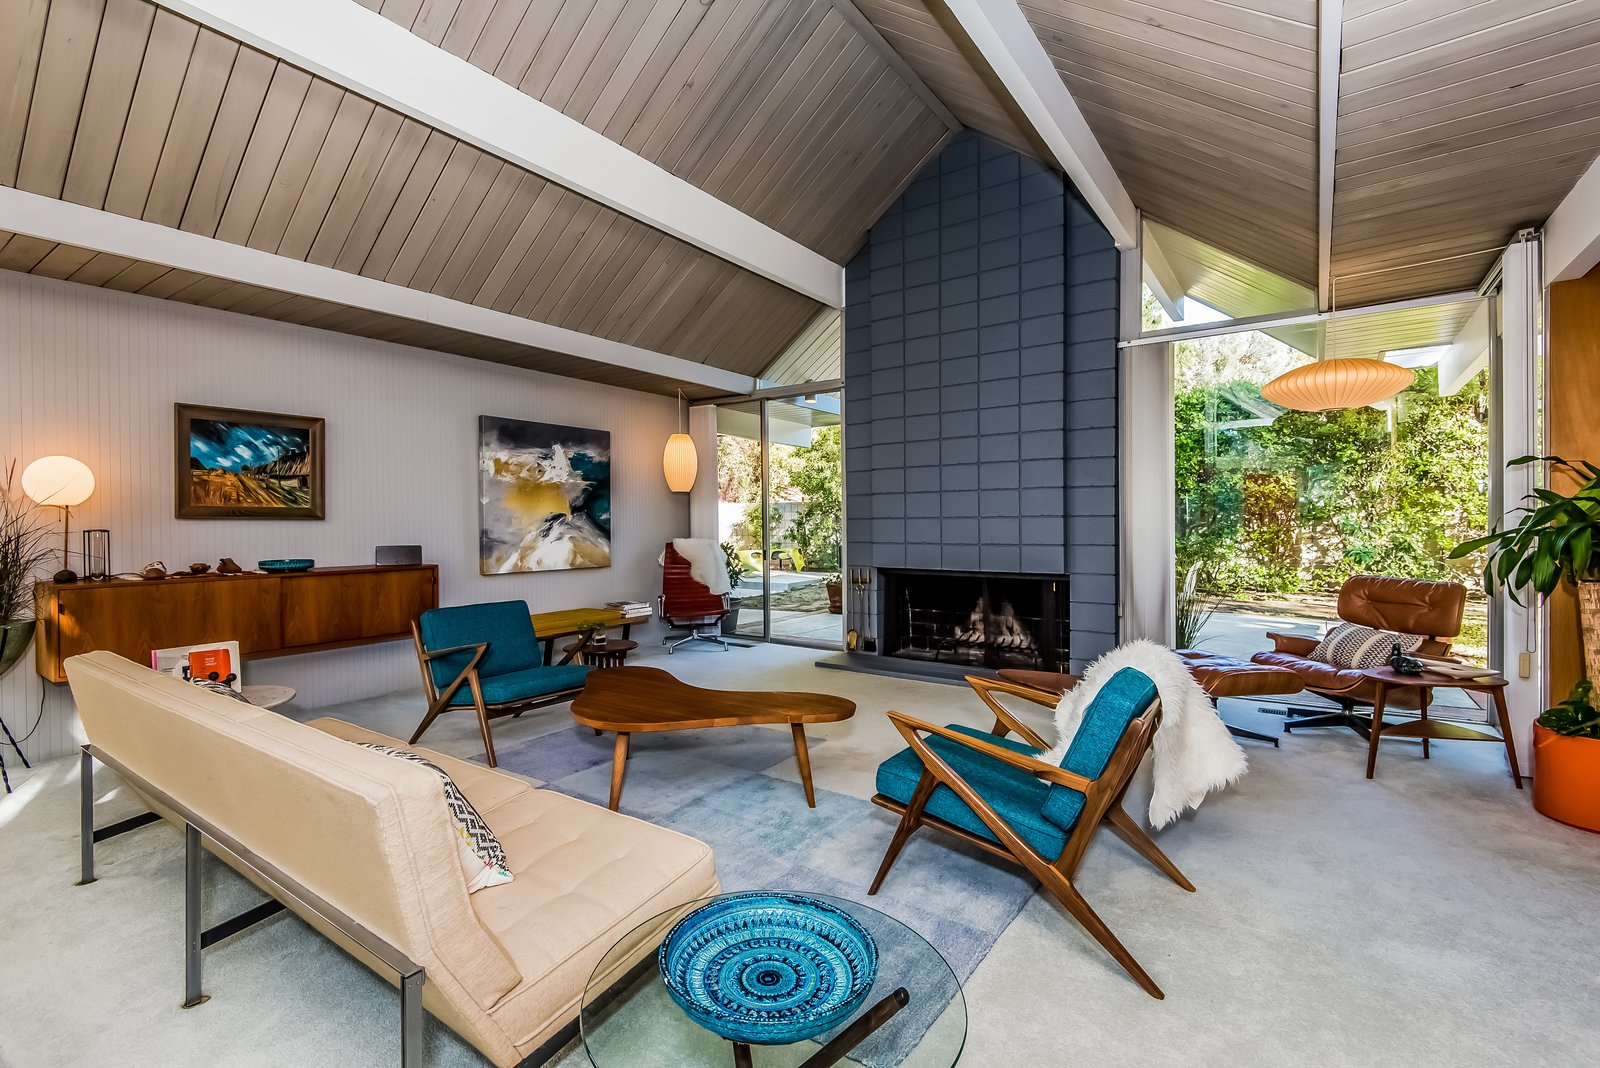 The George Nelson Cigar and Saucer Pendant Lamps are original, and also available for purchase. A cinderblock fireplace provides an inviting focal point.  Photo 5 of 13 in With Only One Previous Set of Owners, a Pristine Eichler Home Asks $799K